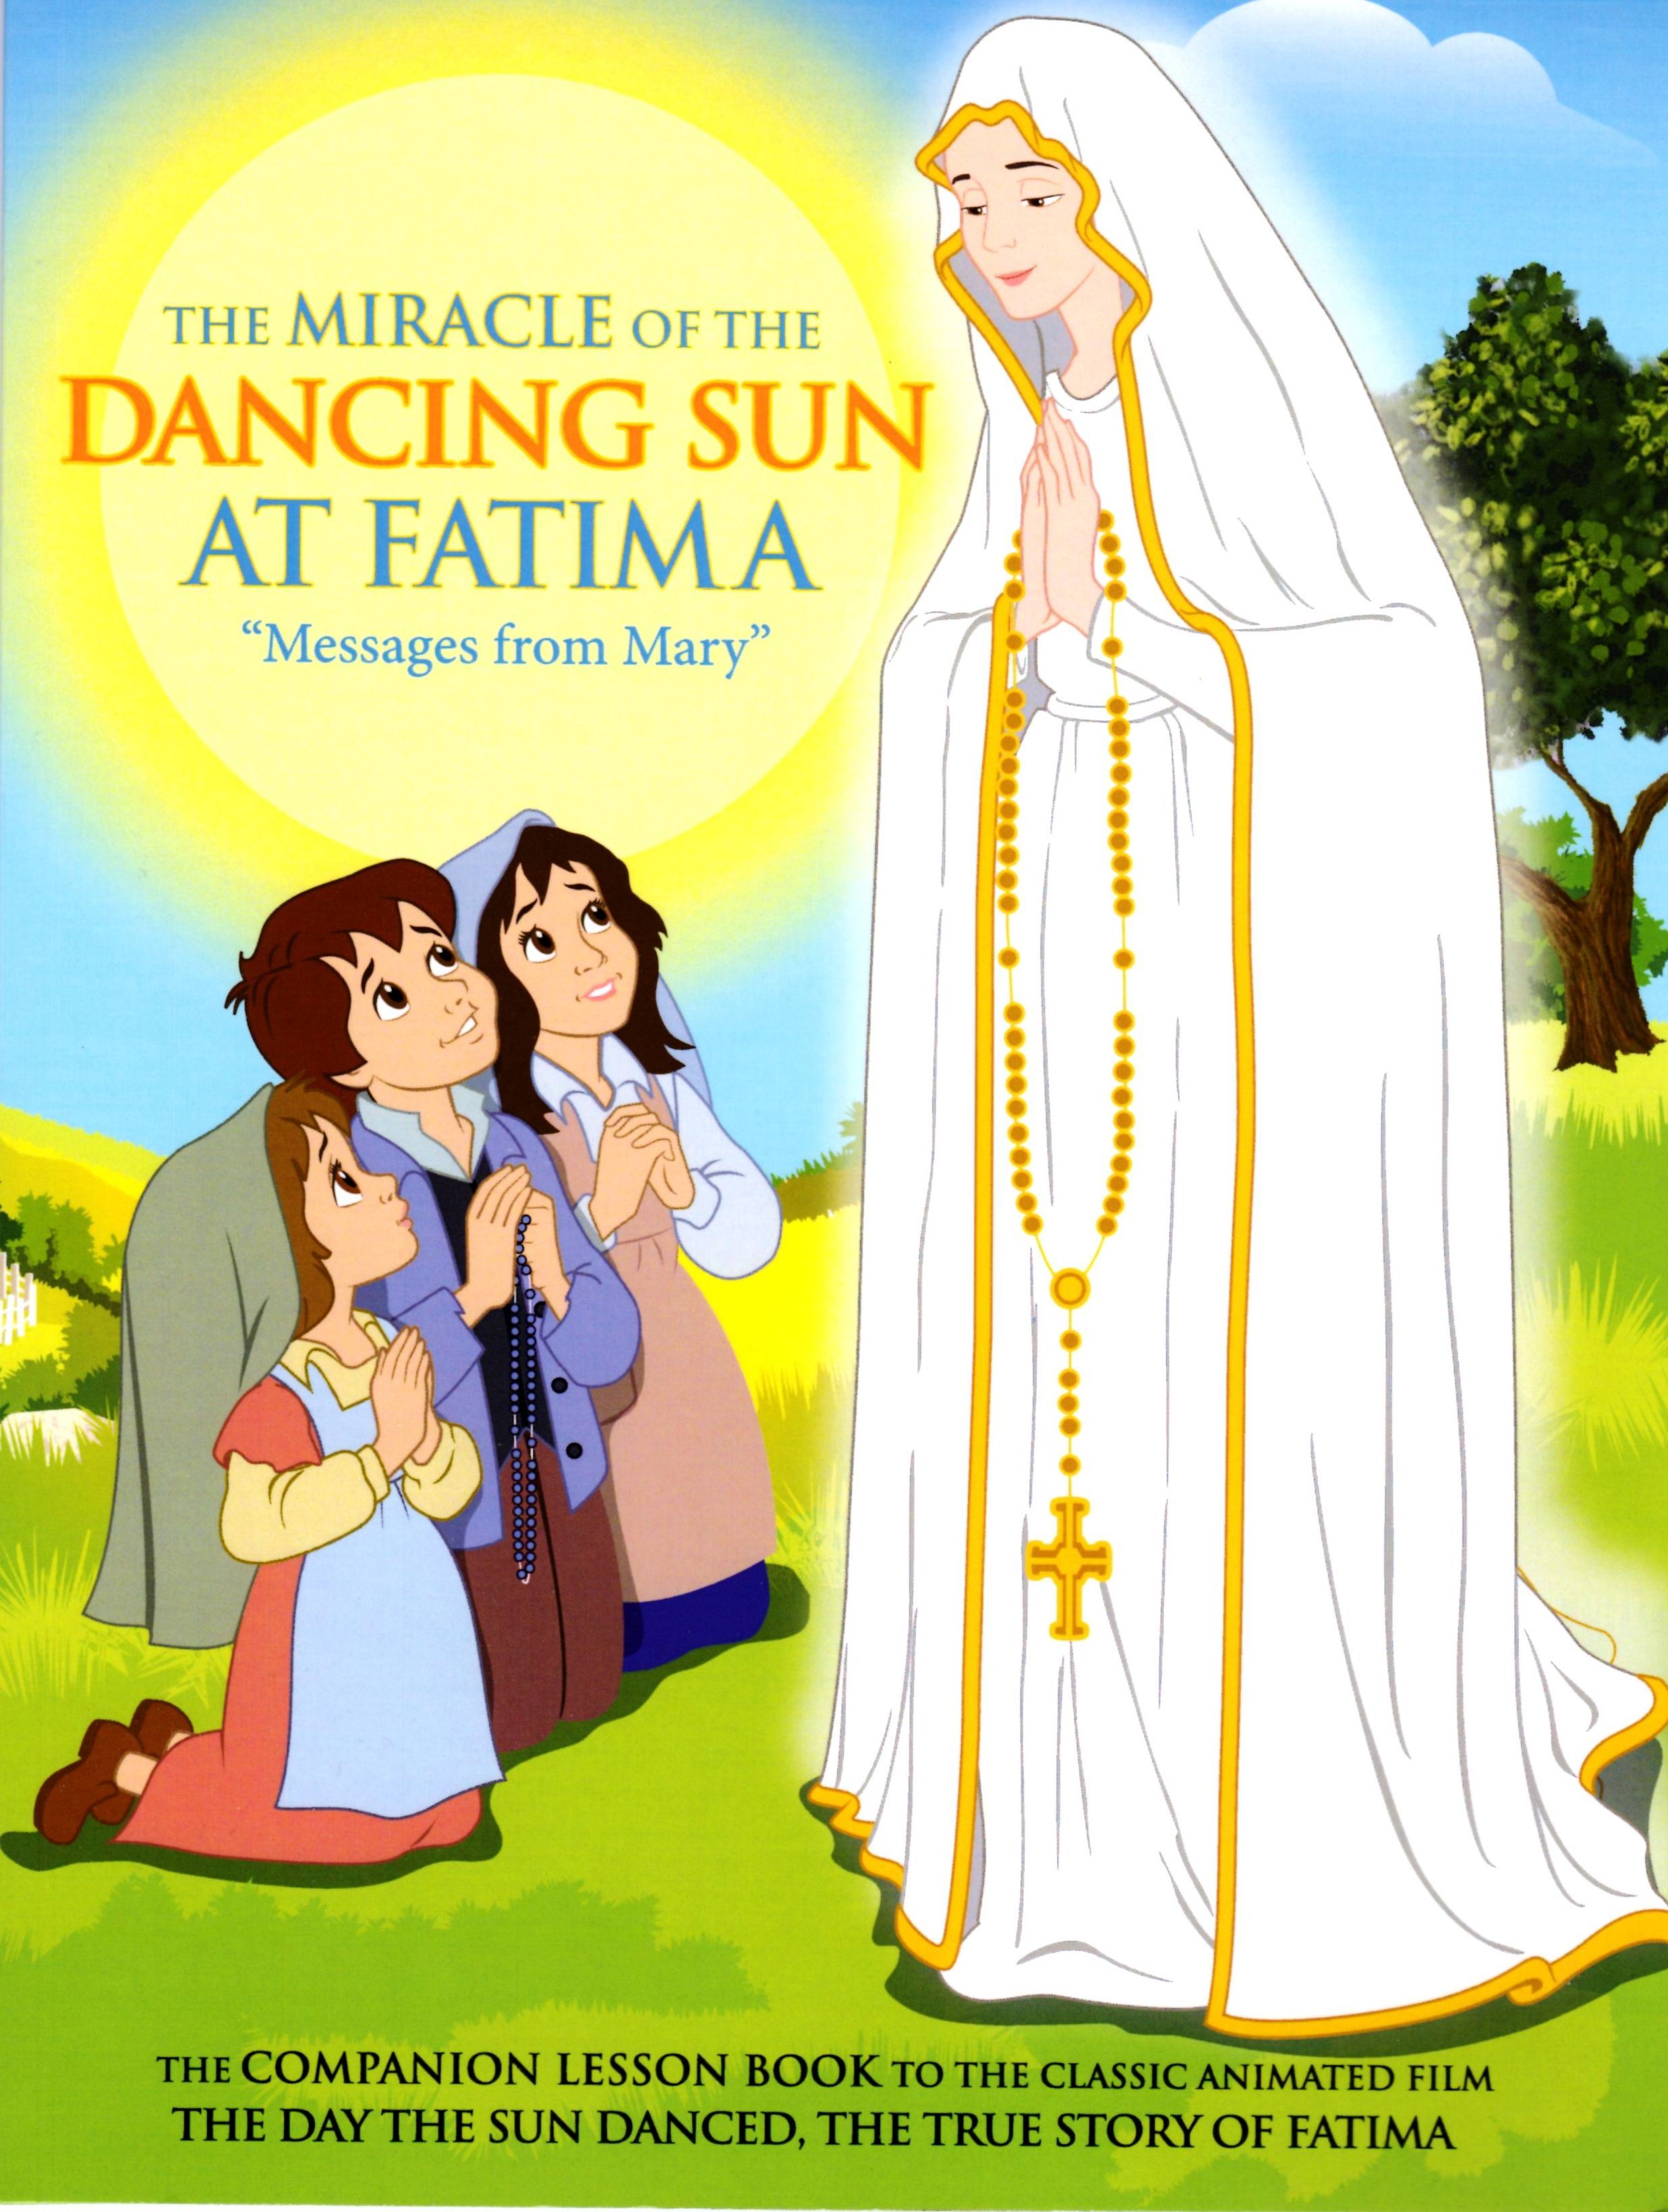 Free Book Will Introduce Children To Our Lady Of Fatima